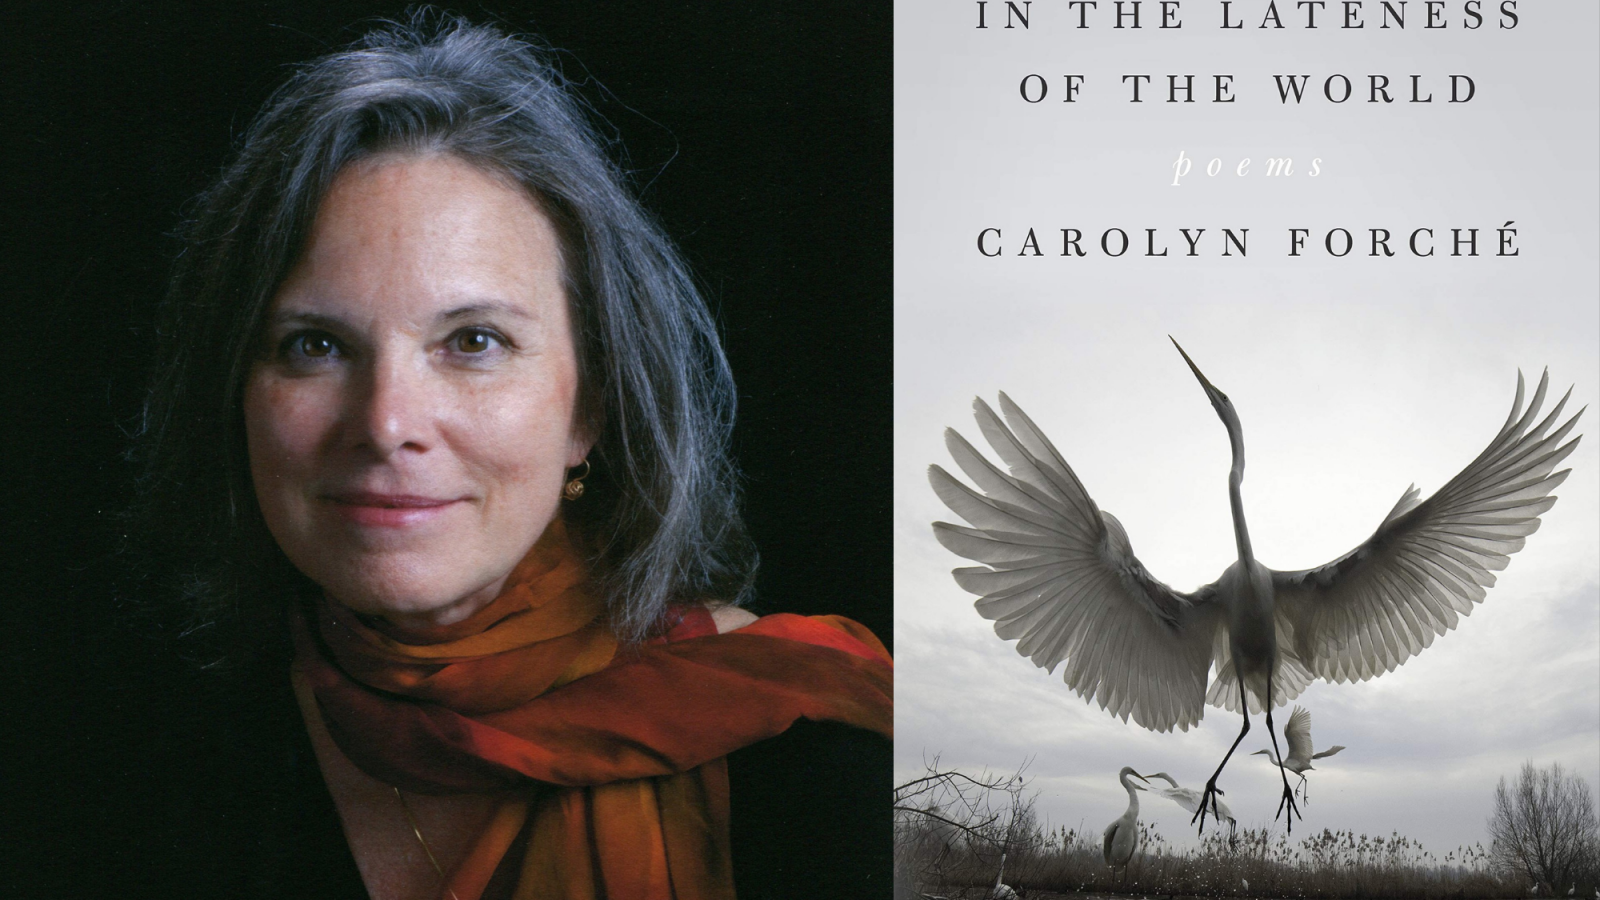 Carolyn Forche with book cover for In the Lateness of the World